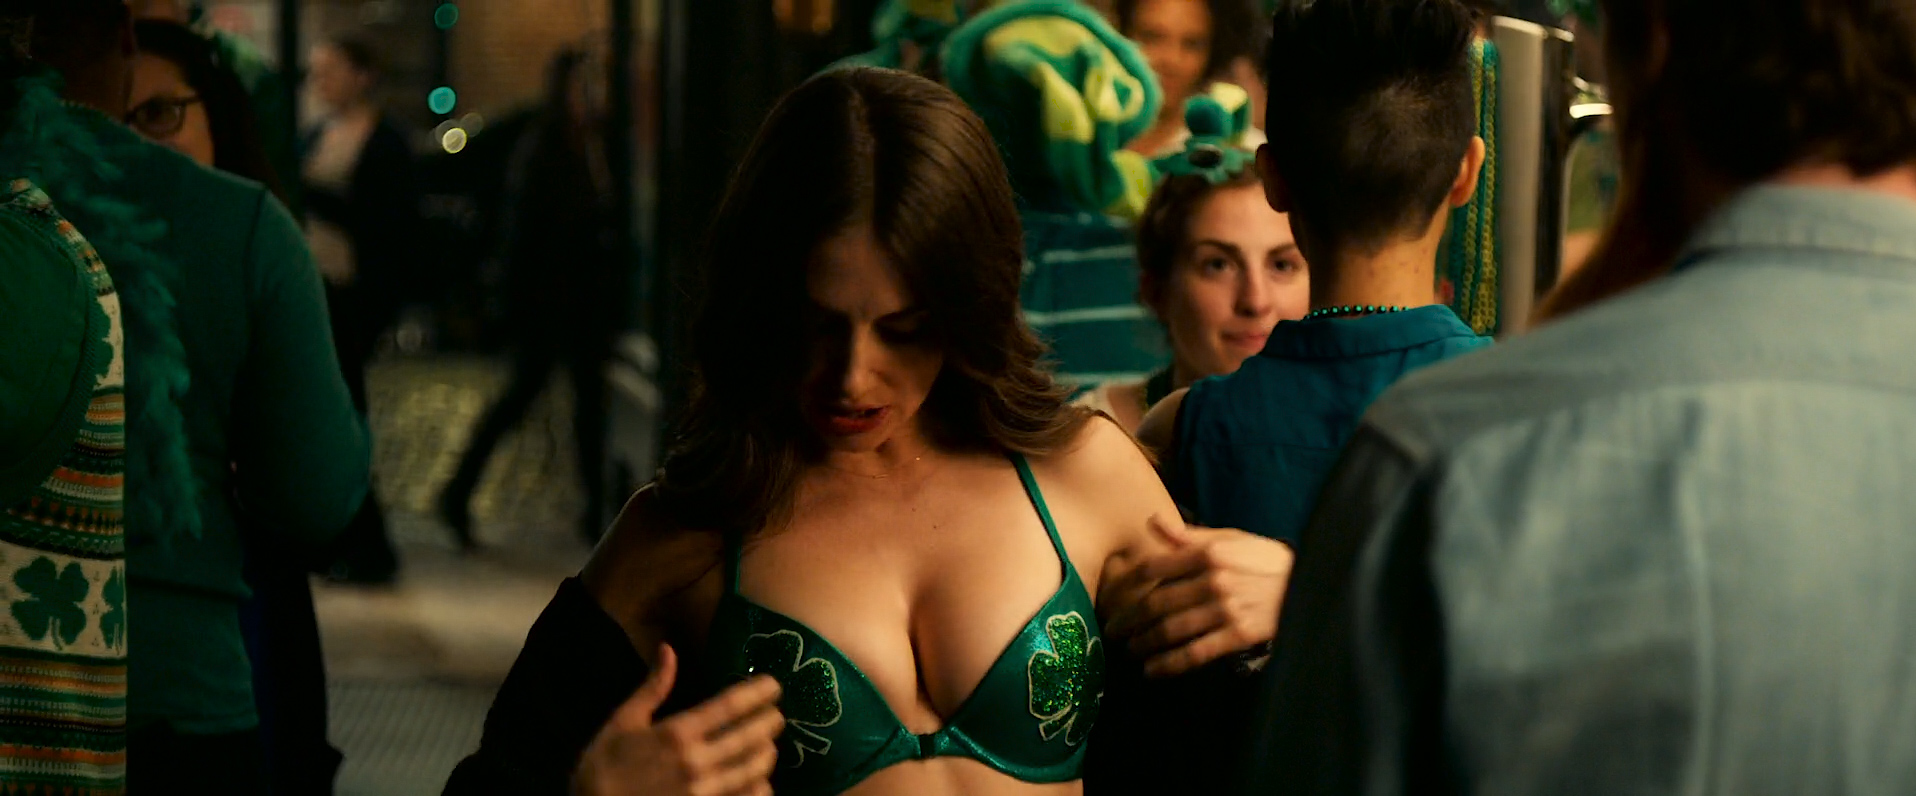 Dakota Johnson hot and sexy, Alison Brie hot cleavage and Leslie Man sex - How to Be Single (2016) HD 1080 WEB-DL (3)